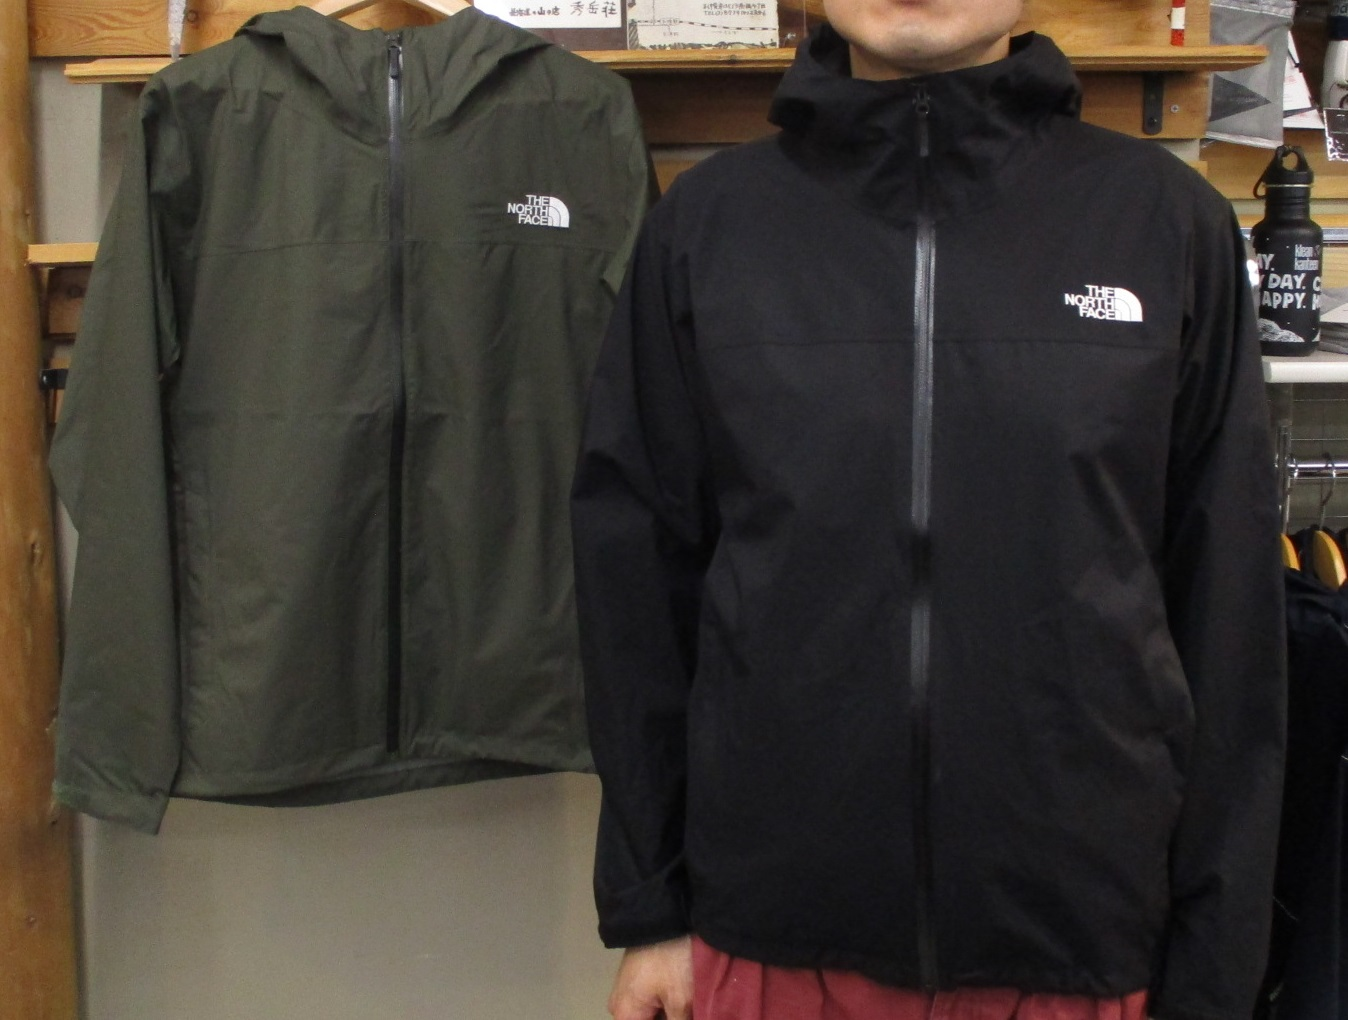 THE NORTH FACE 2nd デリバリー届きました。_d0198793_14395684.jpg